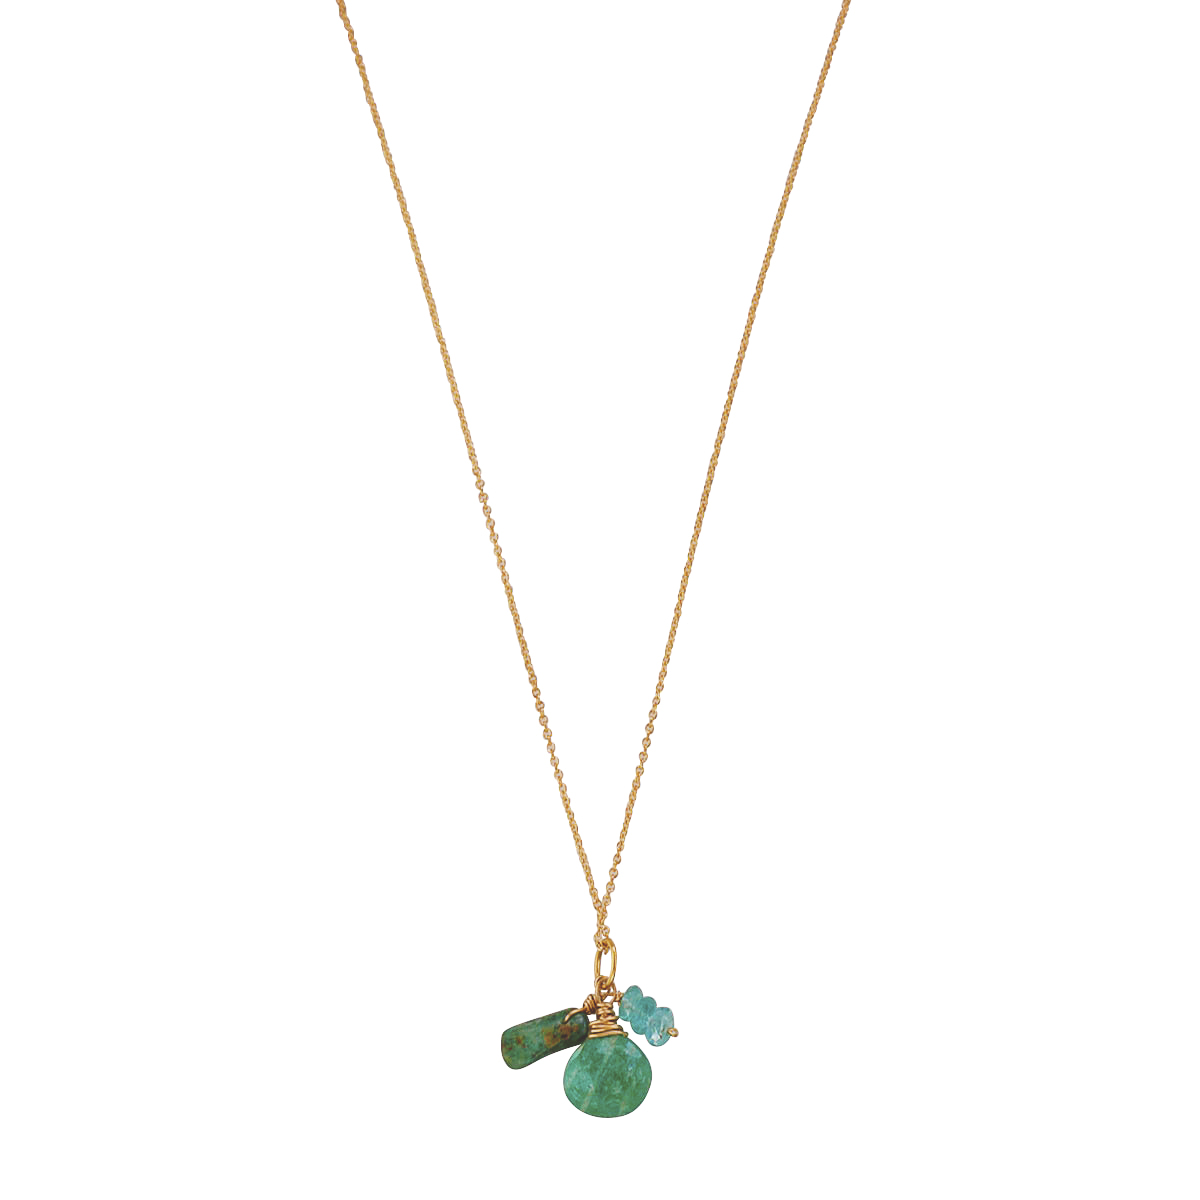 Charm necklace with amazonite, apatite and kyanite